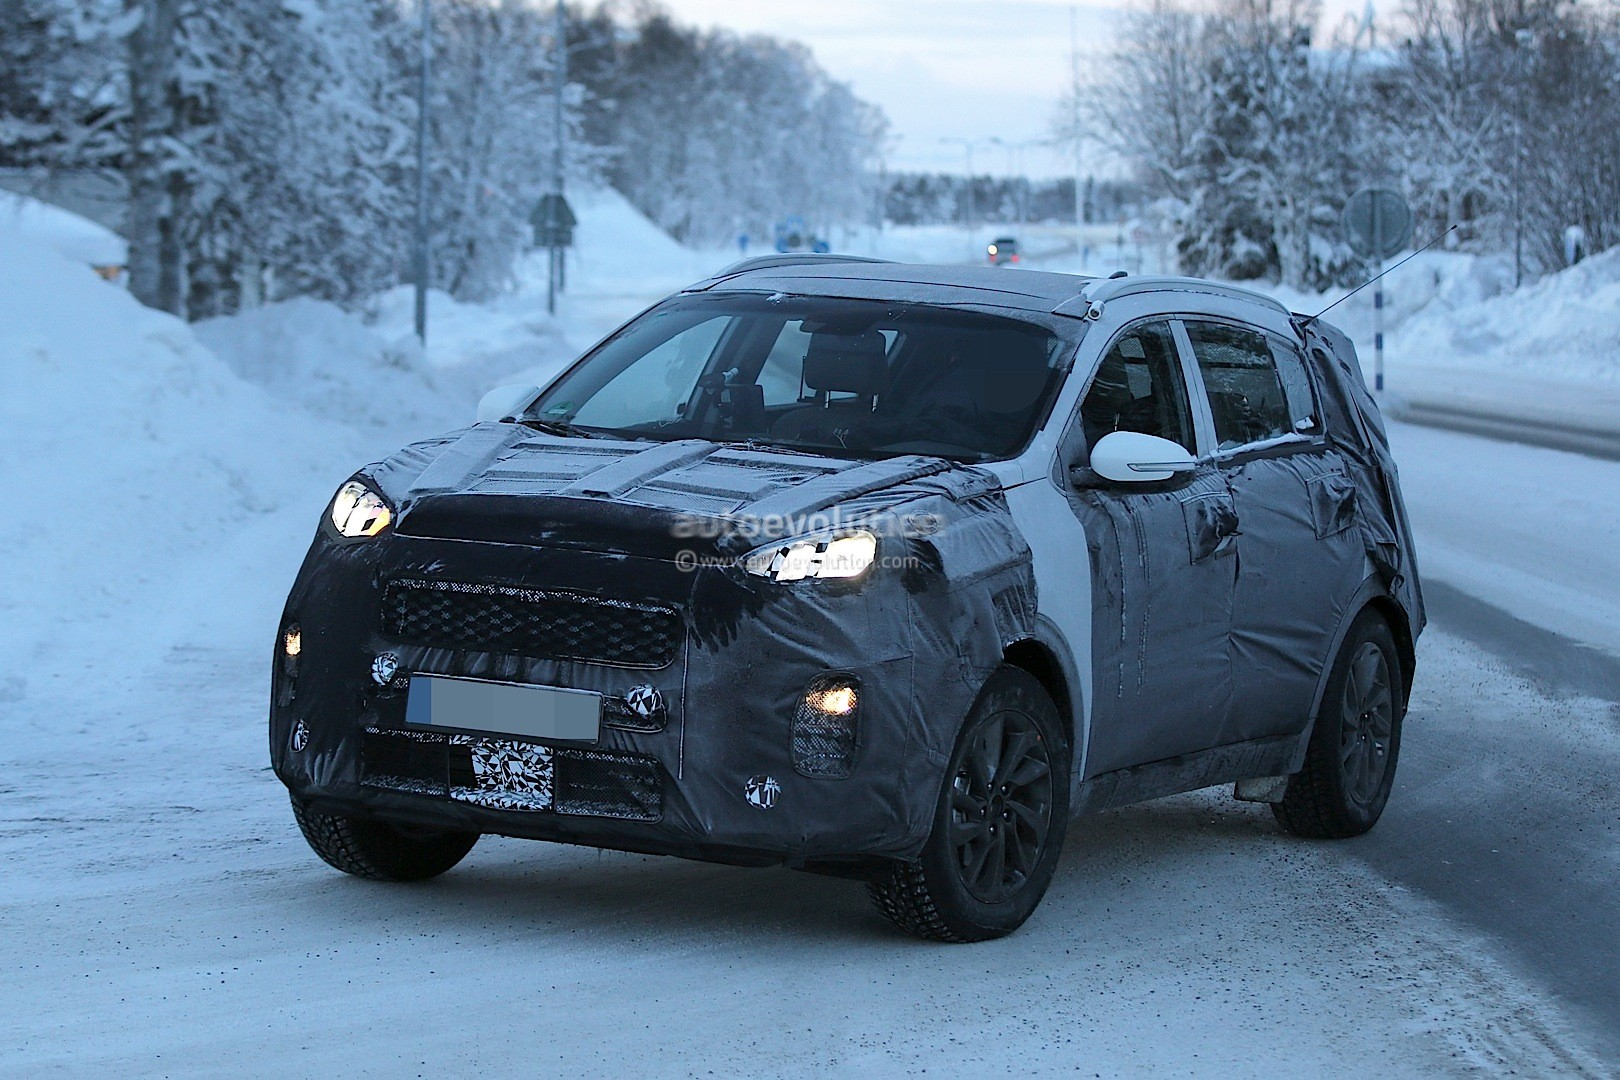 2016 kia sportage spied looks like a bigger kx3 with sorento dna autoevolution. Black Bedroom Furniture Sets. Home Design Ideas